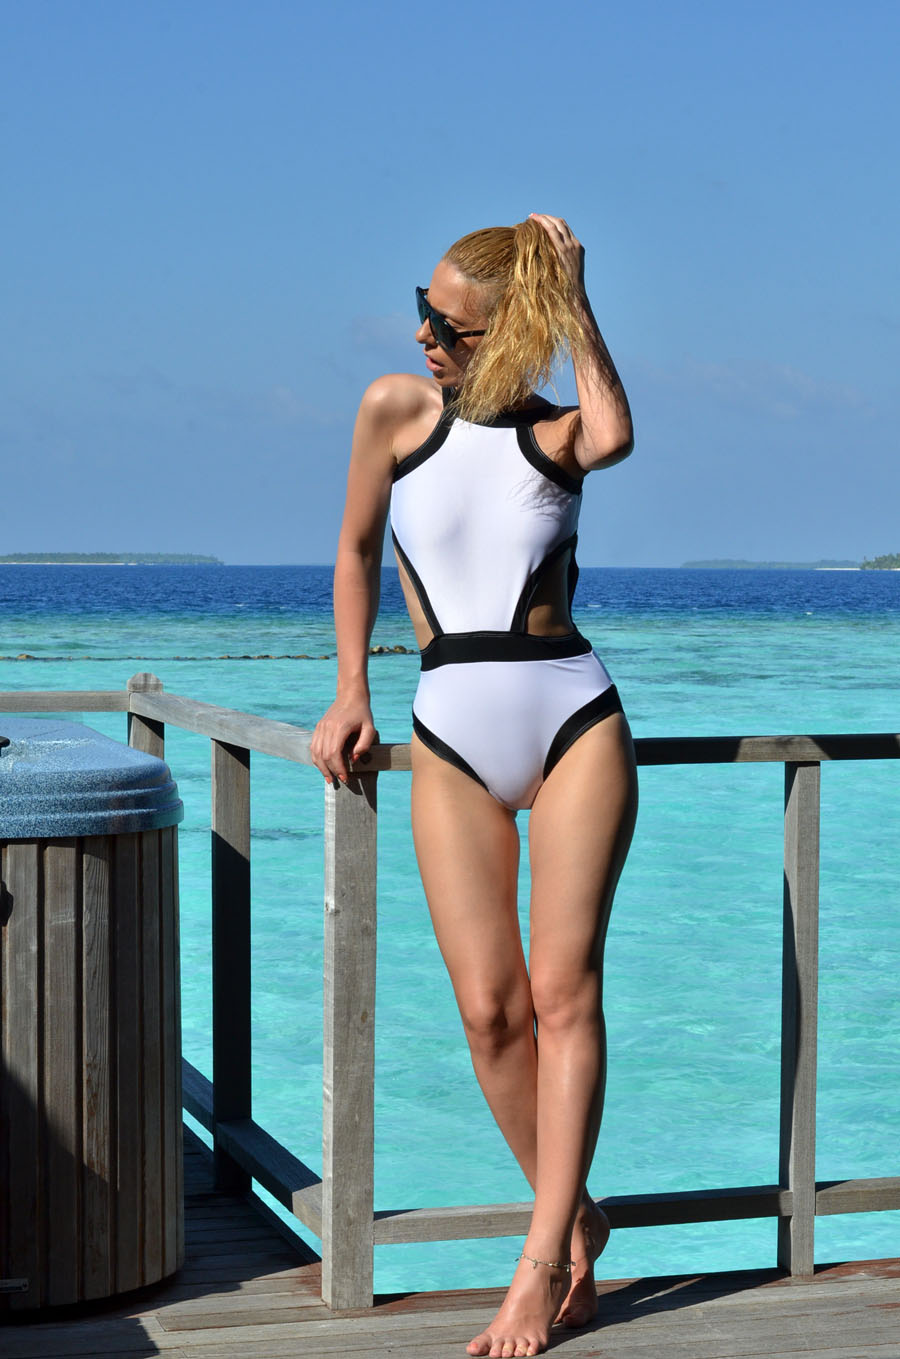 One Piece Swimsuit - Stasha fashion & Travel Blog